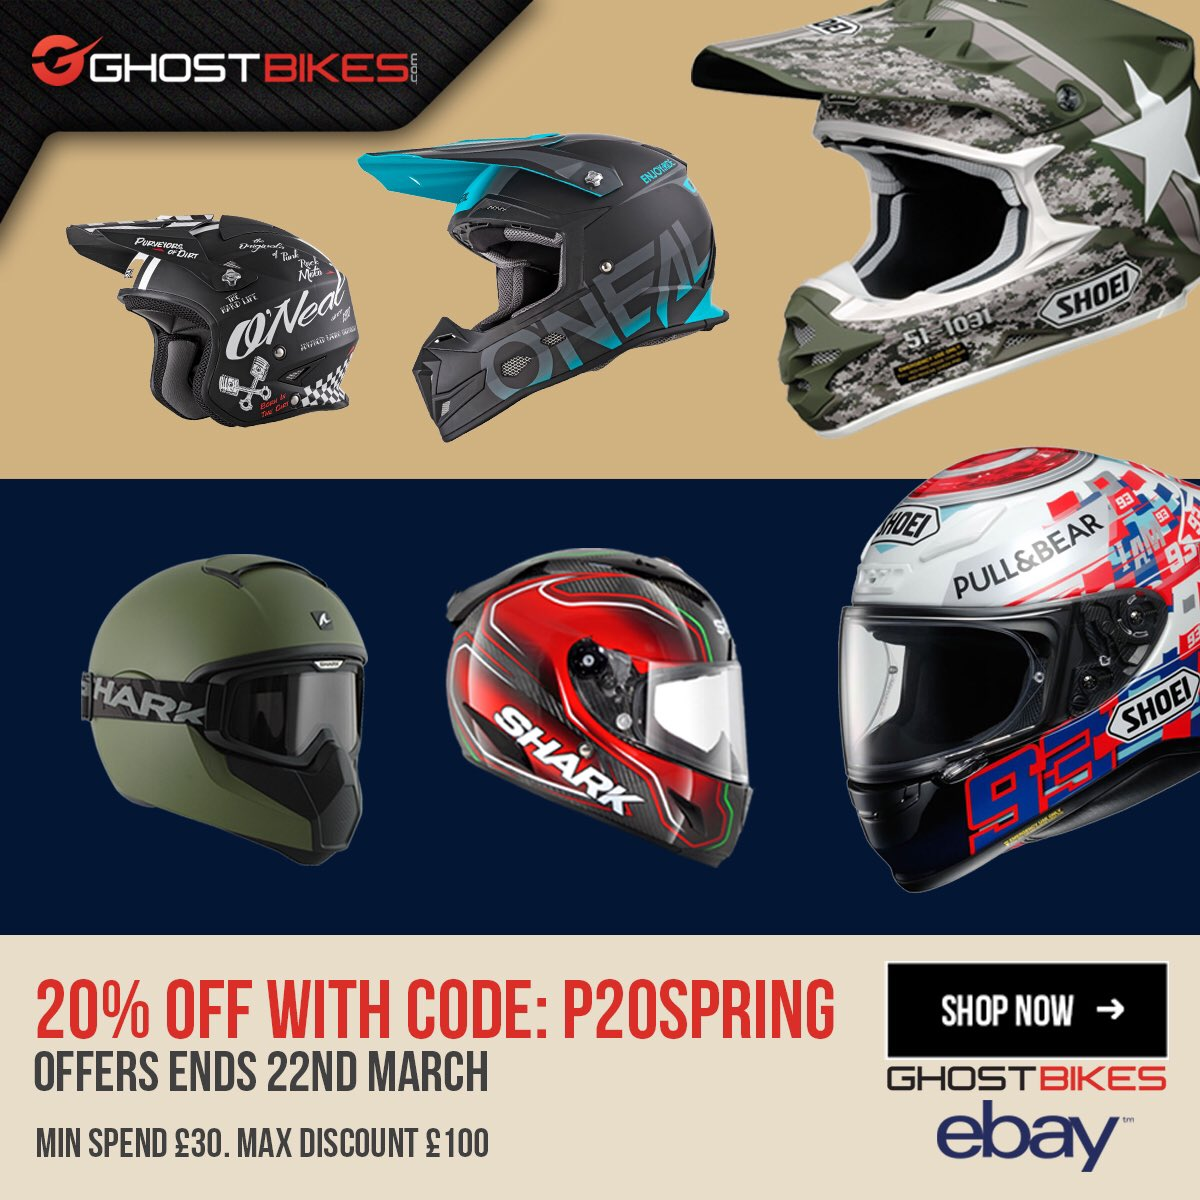 Ghostbikes Com On Twitter Don T Miss Out Ebay Are Treating Ghostbikes Customers To A Huge 20 Off Everything In Our Ebay Store Use Code P20spring Https T Co Edm8nfptme Helmet Motorcycle Biker Gear Motorbike Bikergear